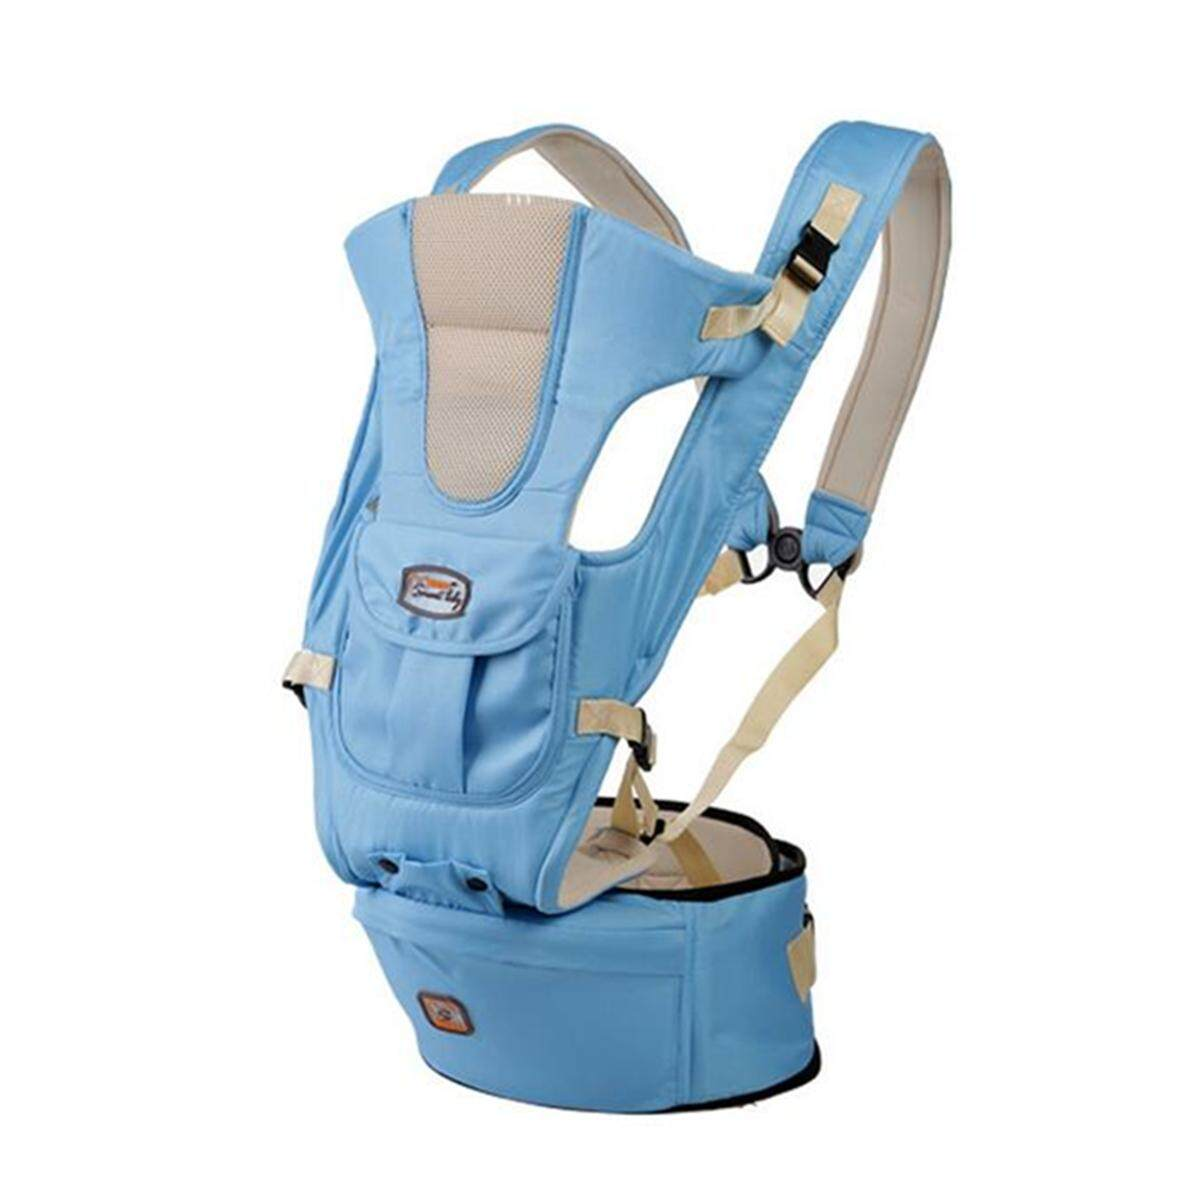 Baby Carrier Infant Kid Sling Adjustable Breathable Ergonomic Wrap Backpack Newblue By Glimmer.